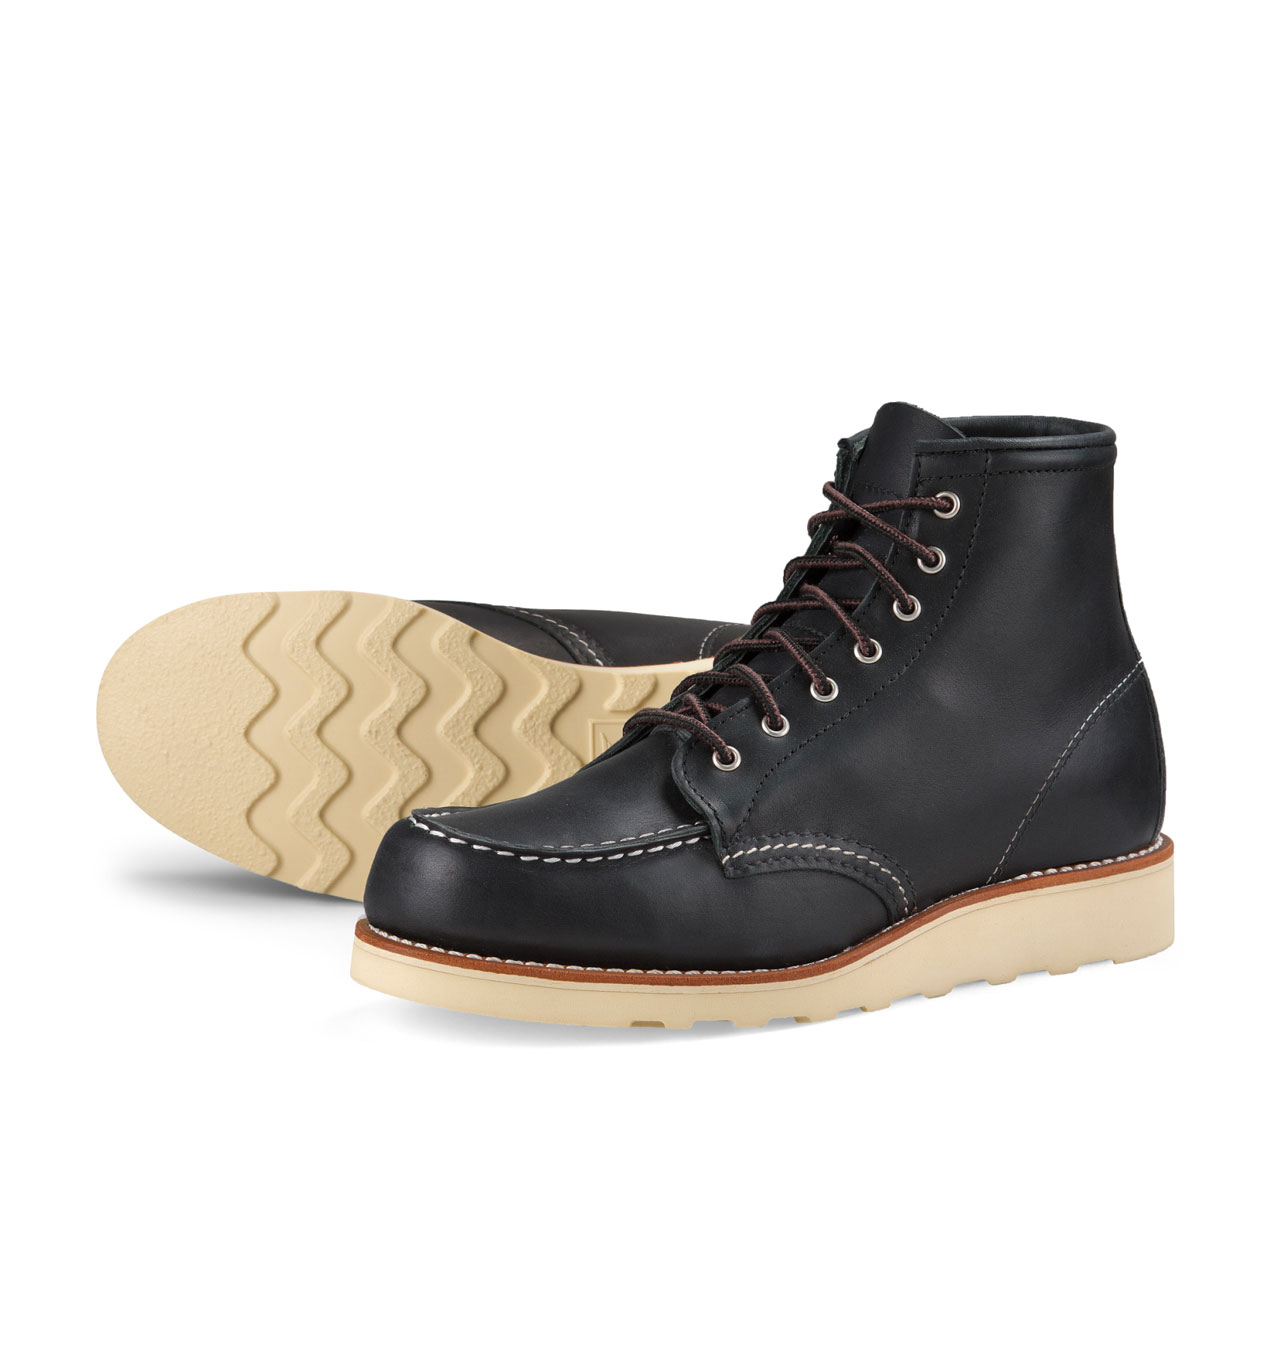 Red Wing Shoes Woman Style No 3373 6-Inch Moc Toe - Black Boundary Leather